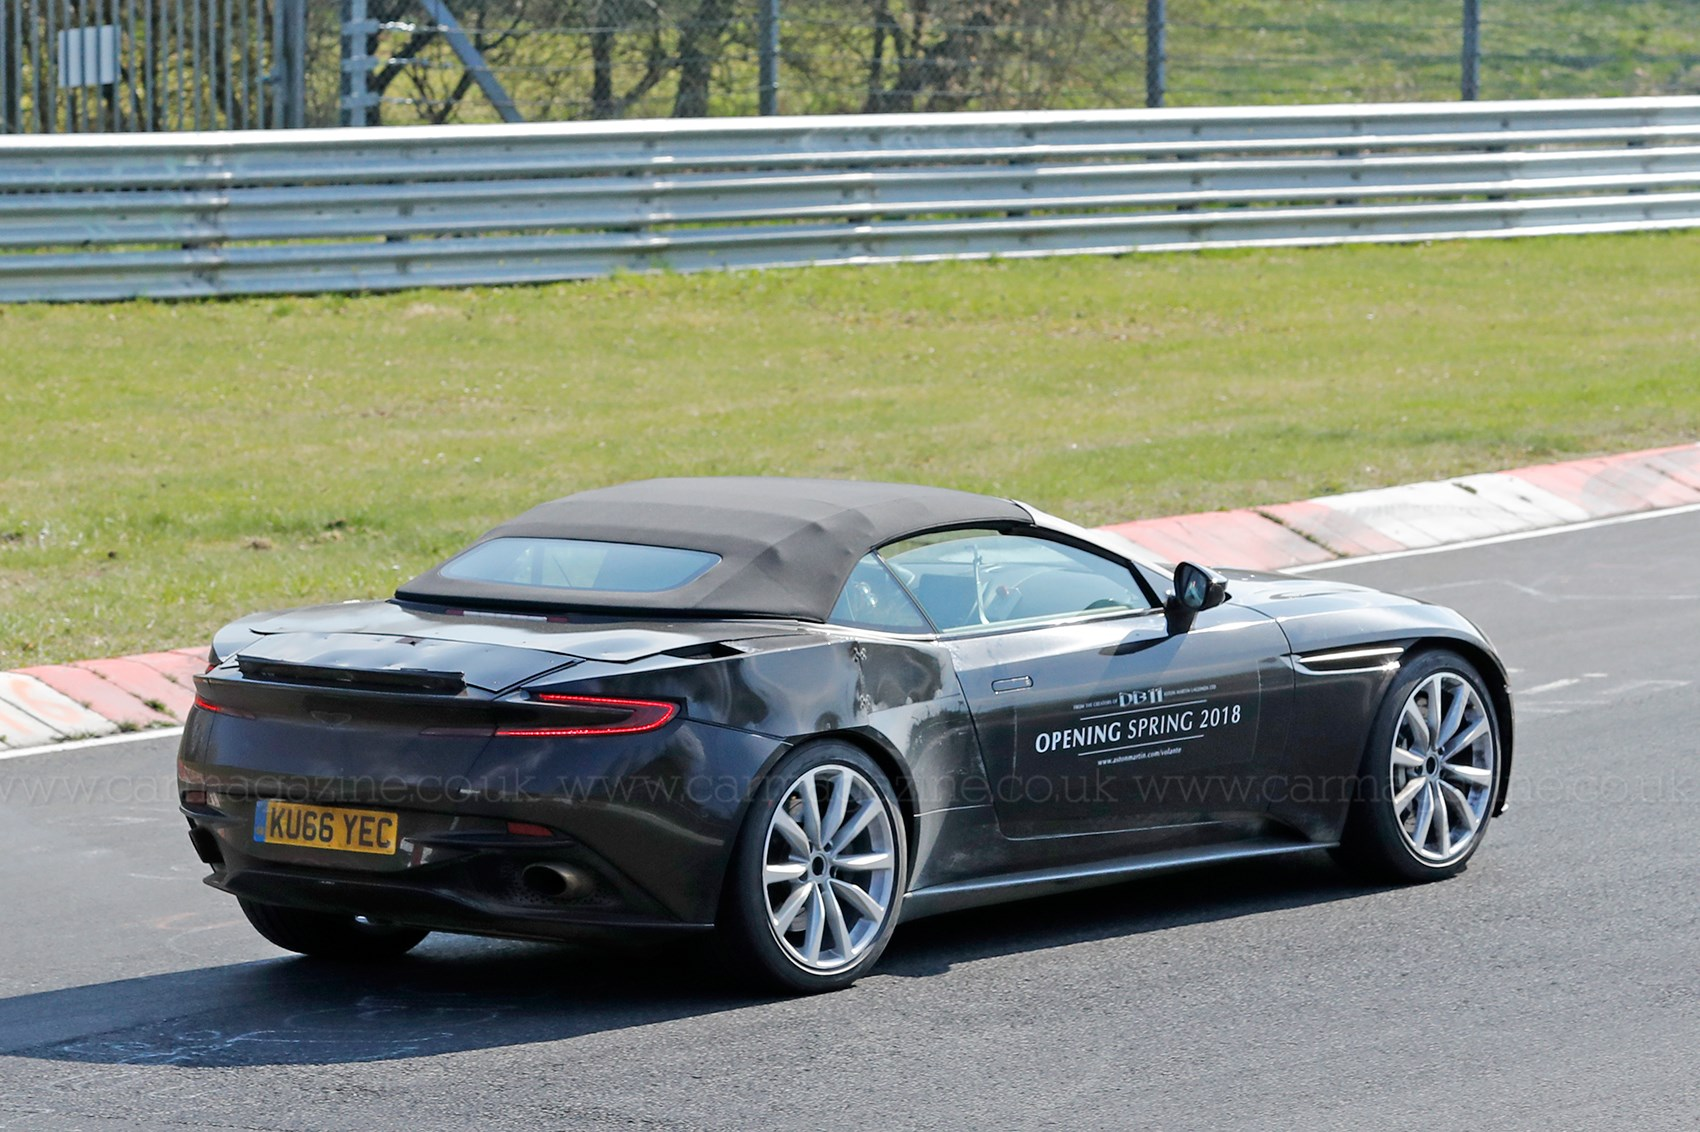 When Prototypes Become Mobile Billboards: Aston Martin